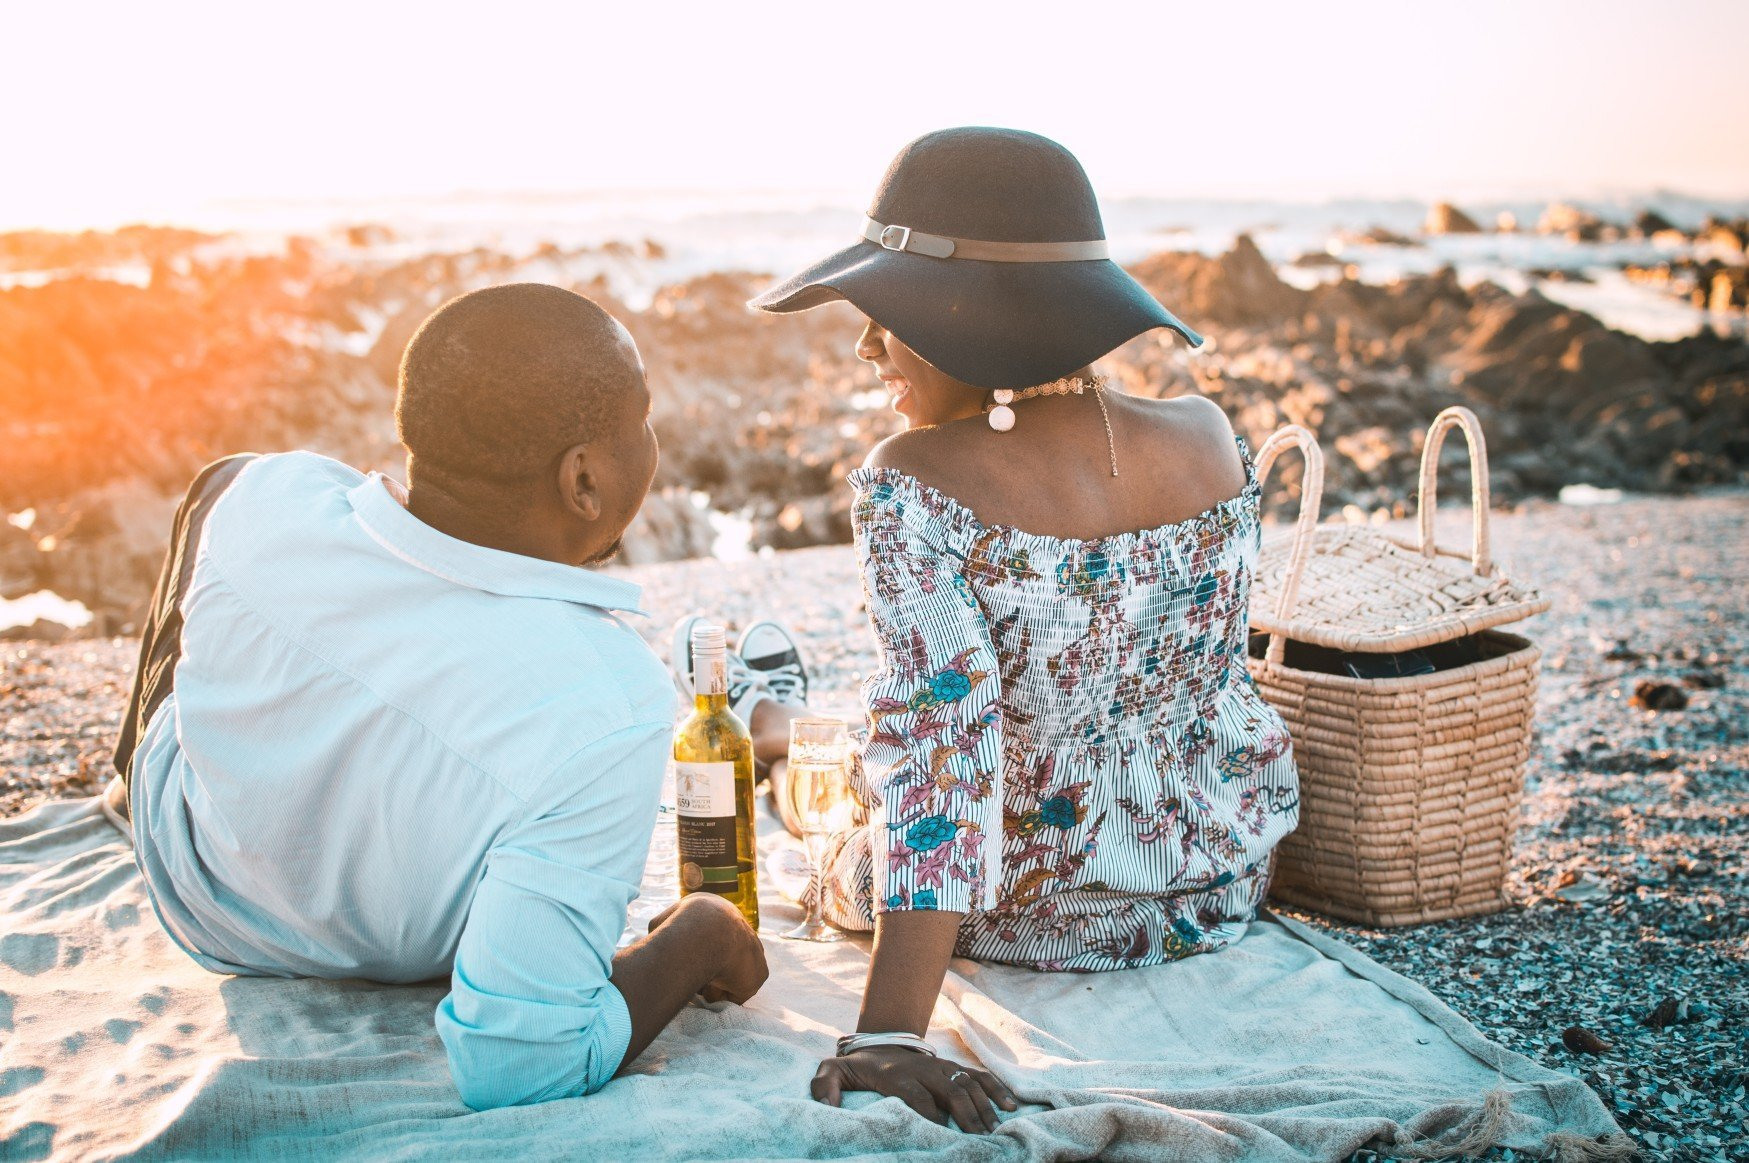 How to Avoid Date Night Disasters According to Your Horoscope Sign